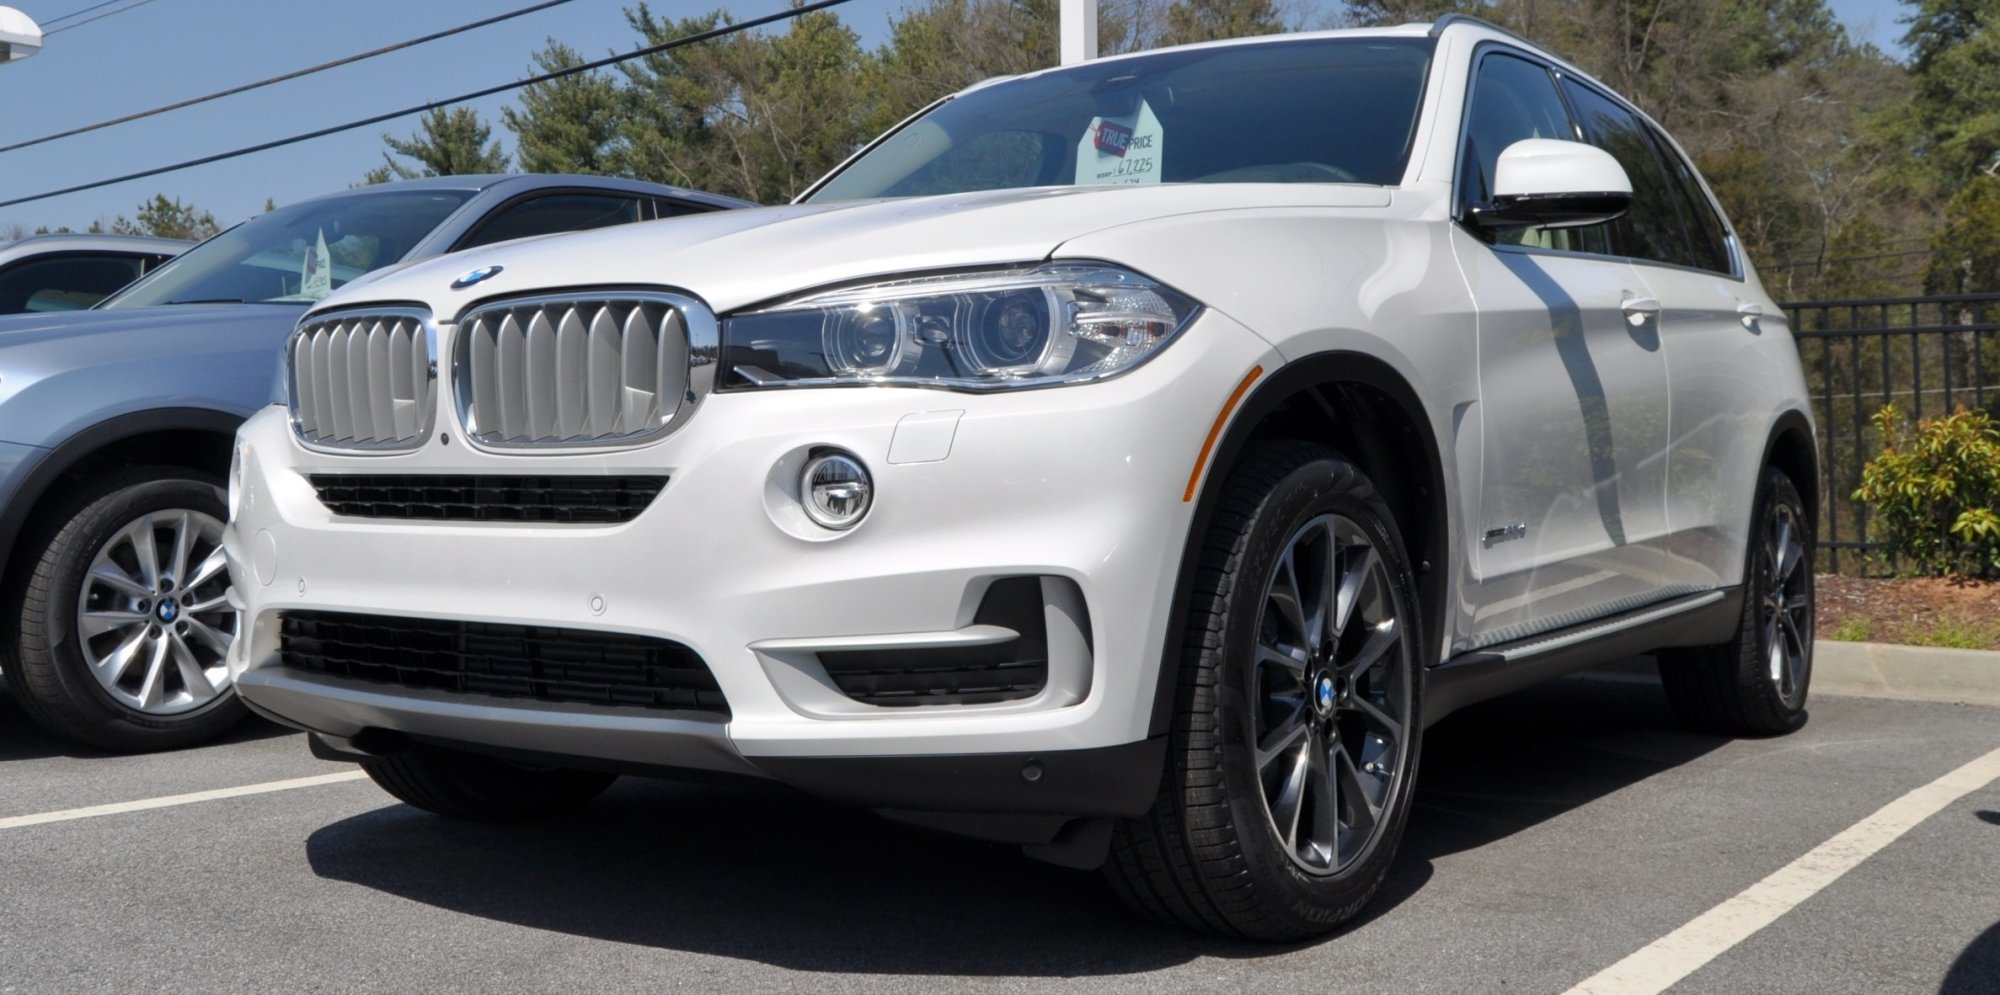 hight resolution of  armada fuse diagram 2016 bmw x7 officially joins x3 x4 x5 and x6 with global spartanburg